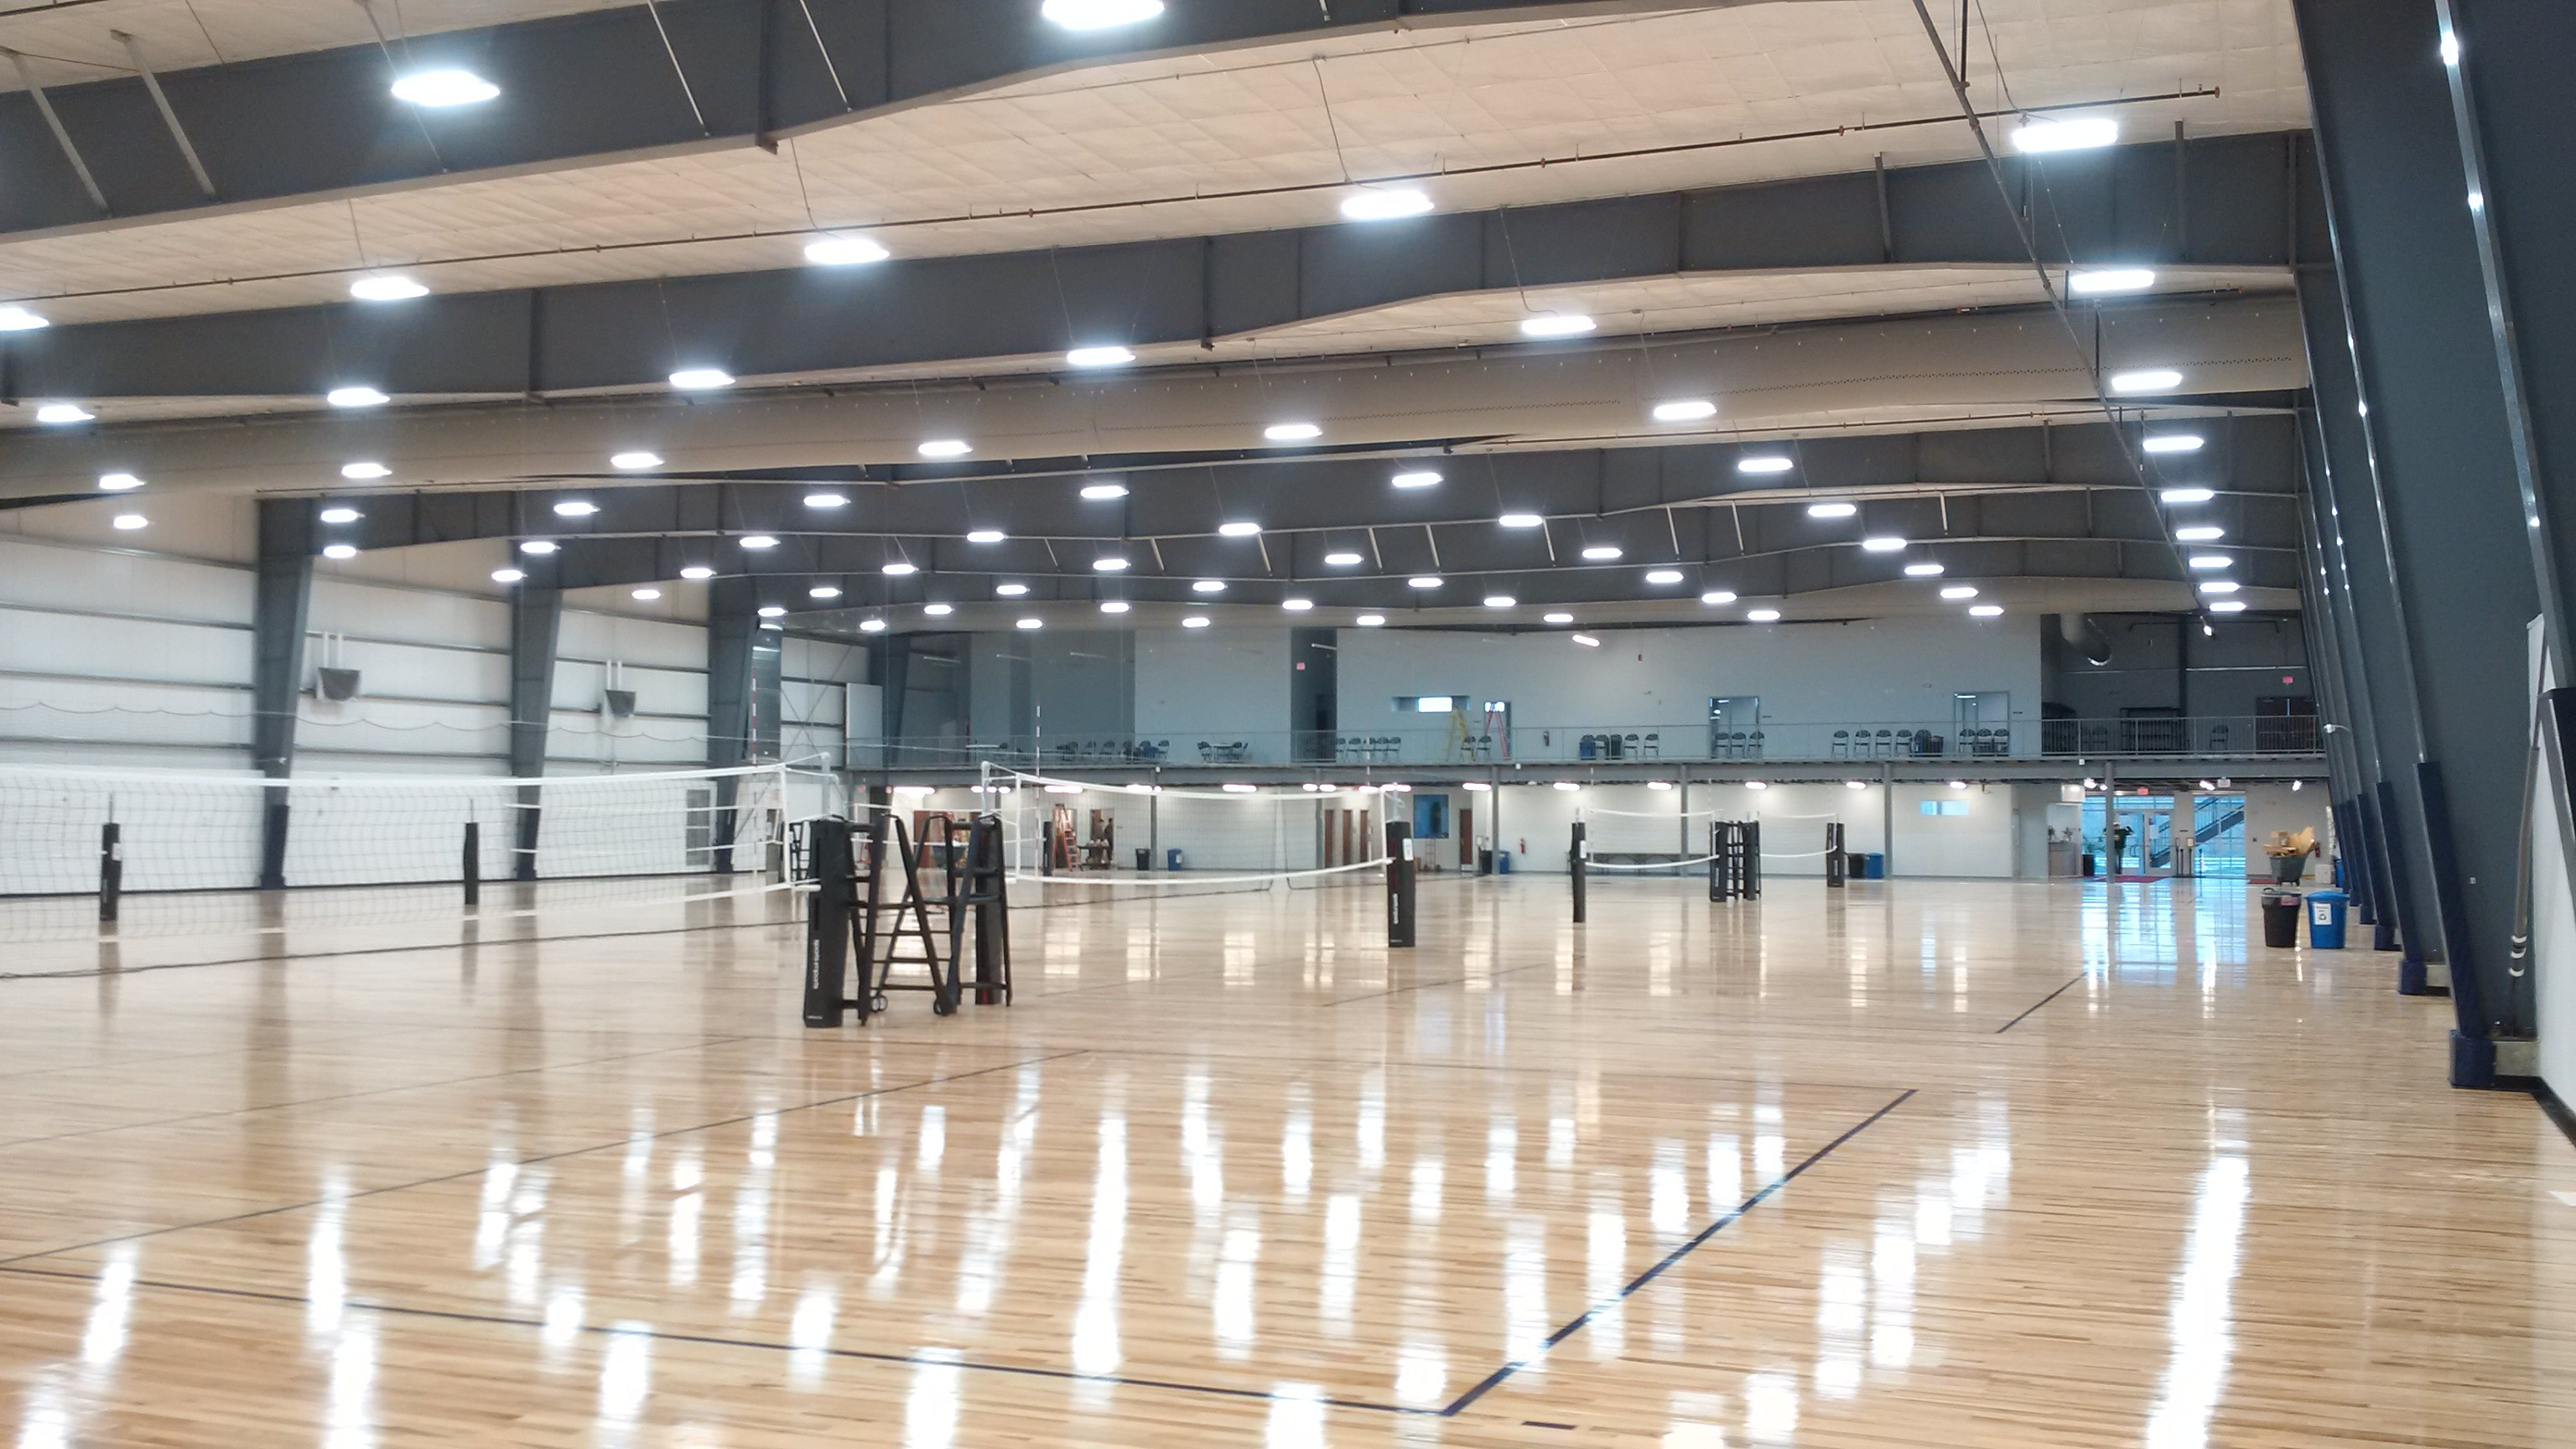 The Volleyball Accademy with Innotech Controls; installed and maintained by Syncquip Mechanical Group's building energy division